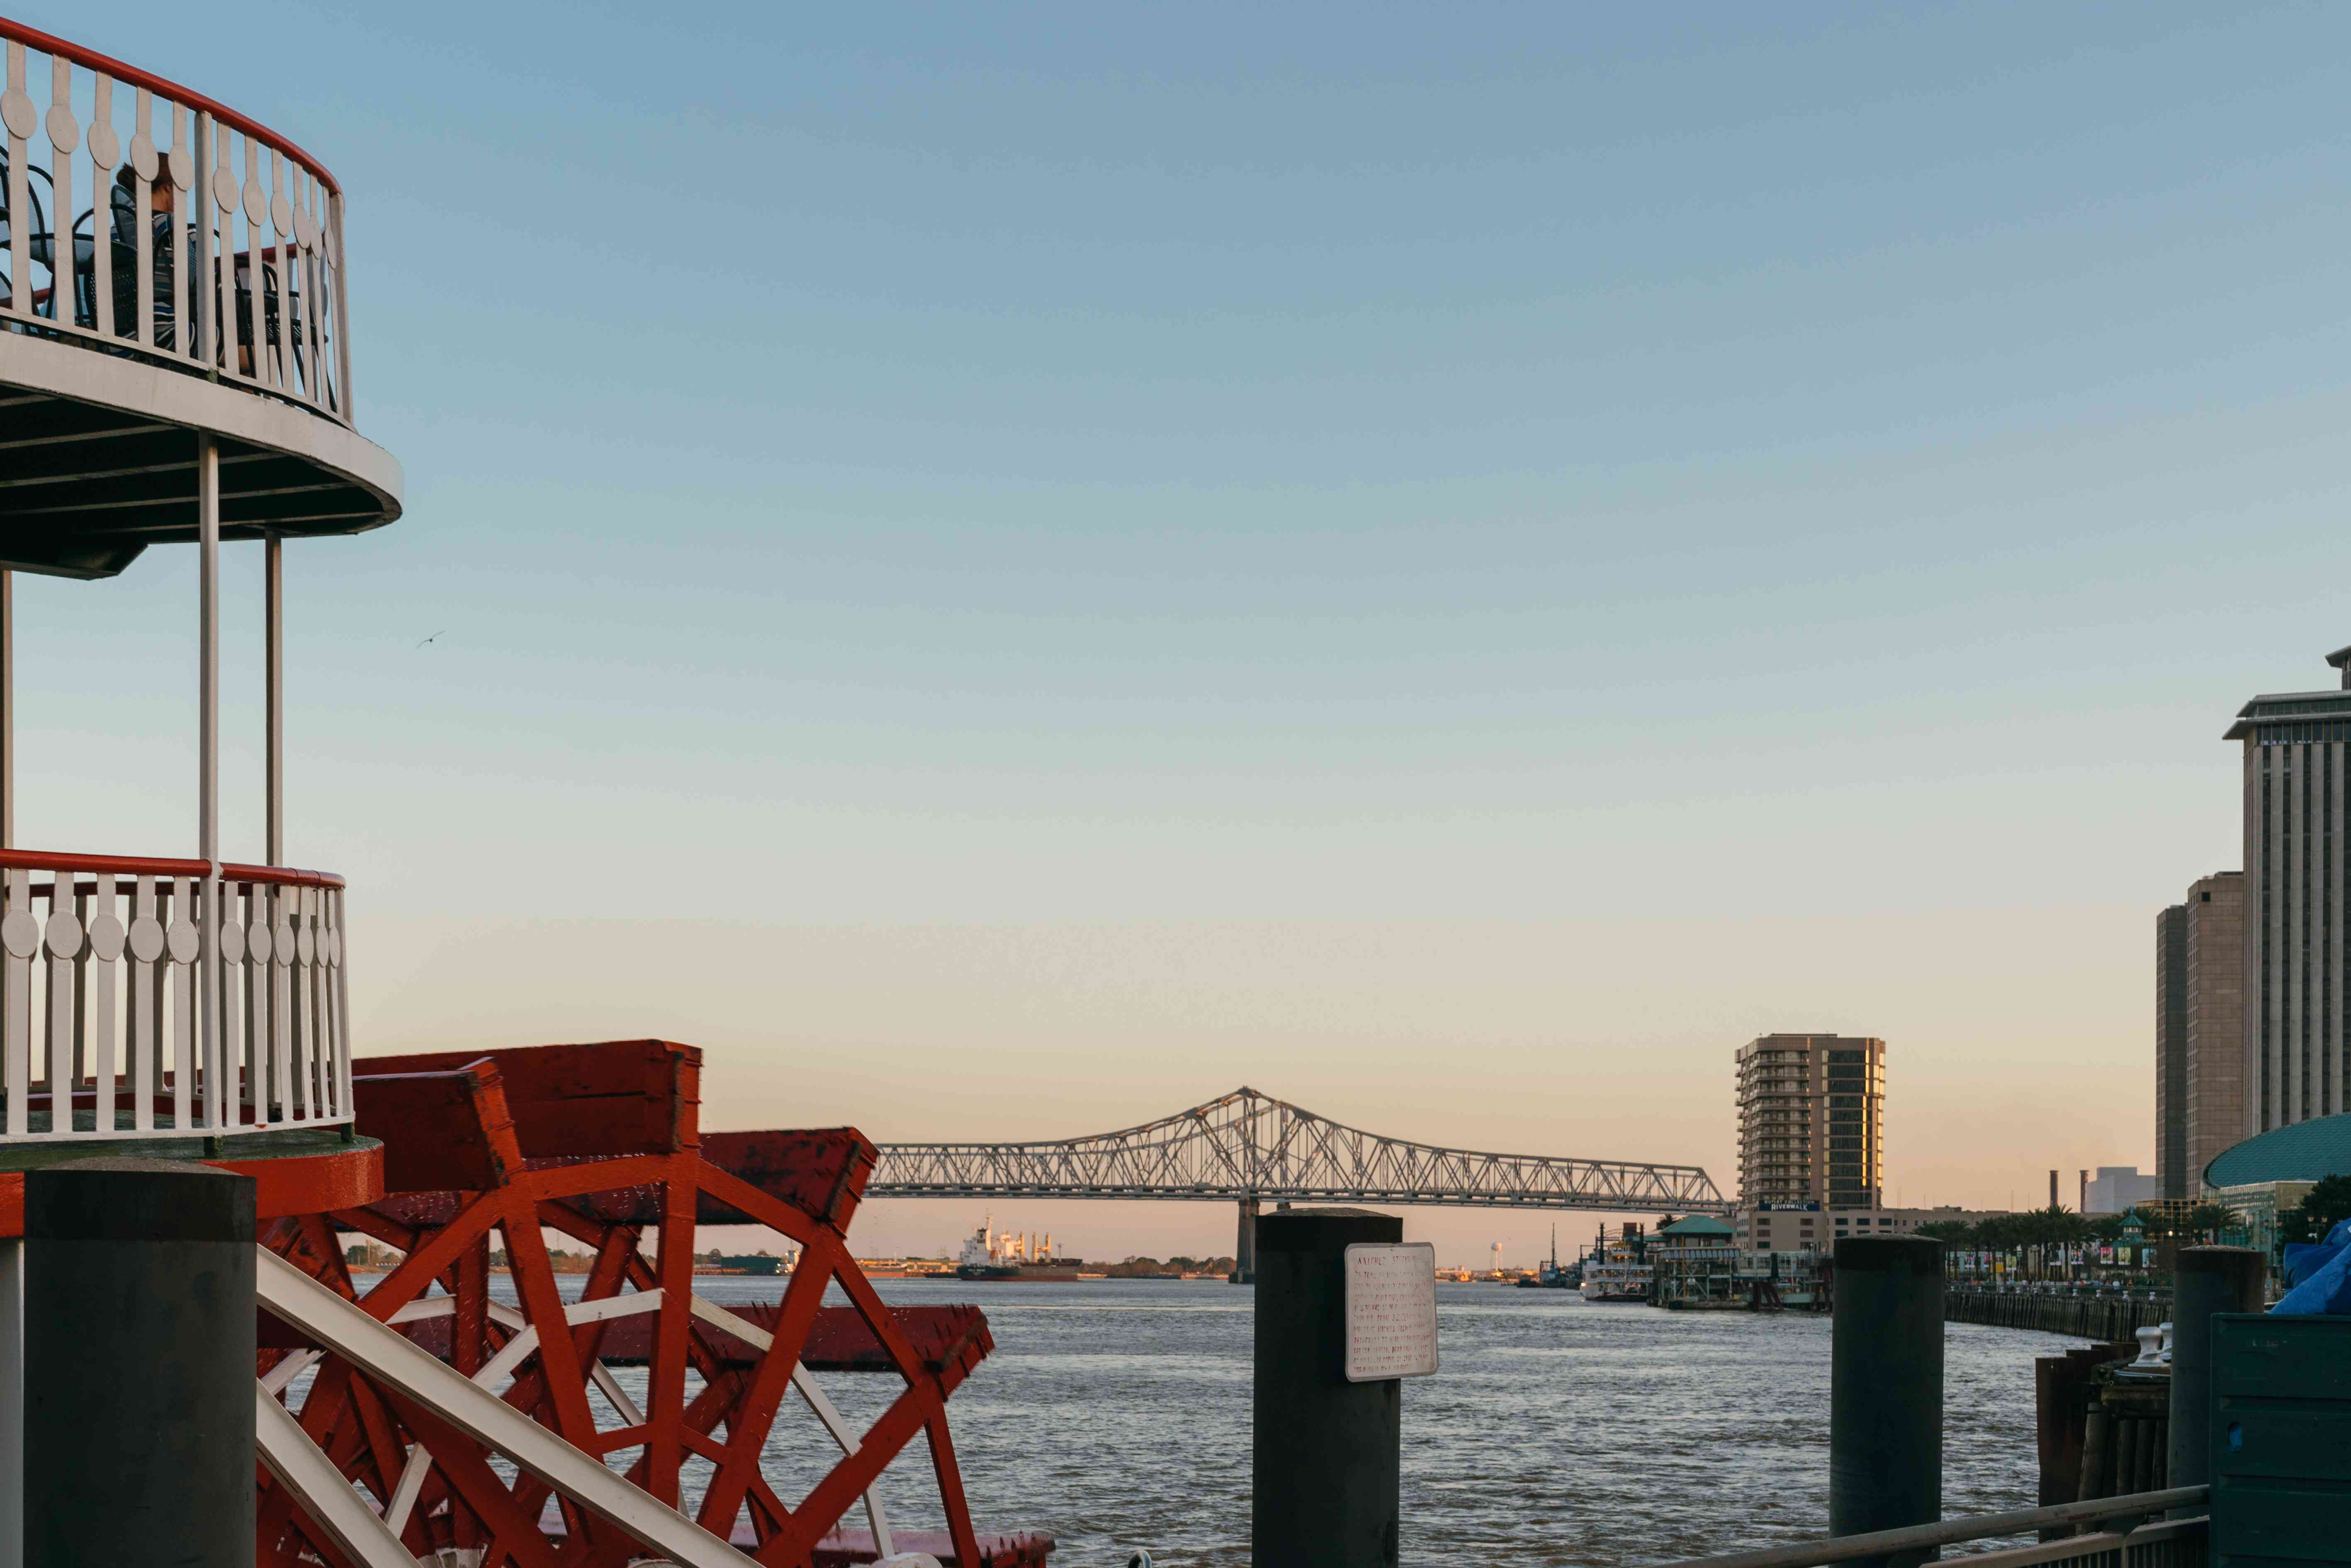 View from the Steamboat Natchez in New Orleans